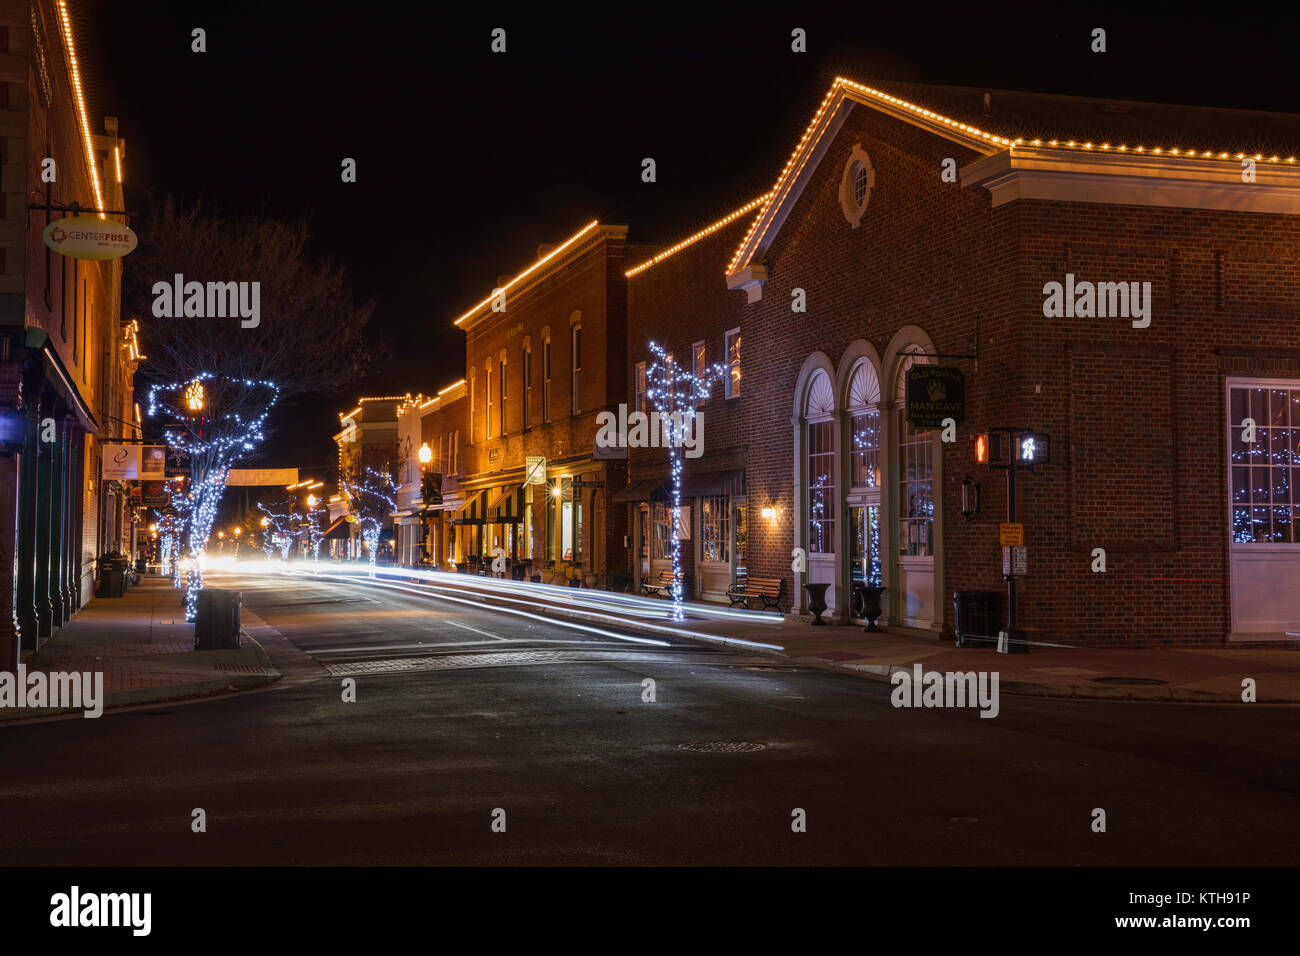 Christmas lights, Downtown Manassas, Virginia - Stock Image